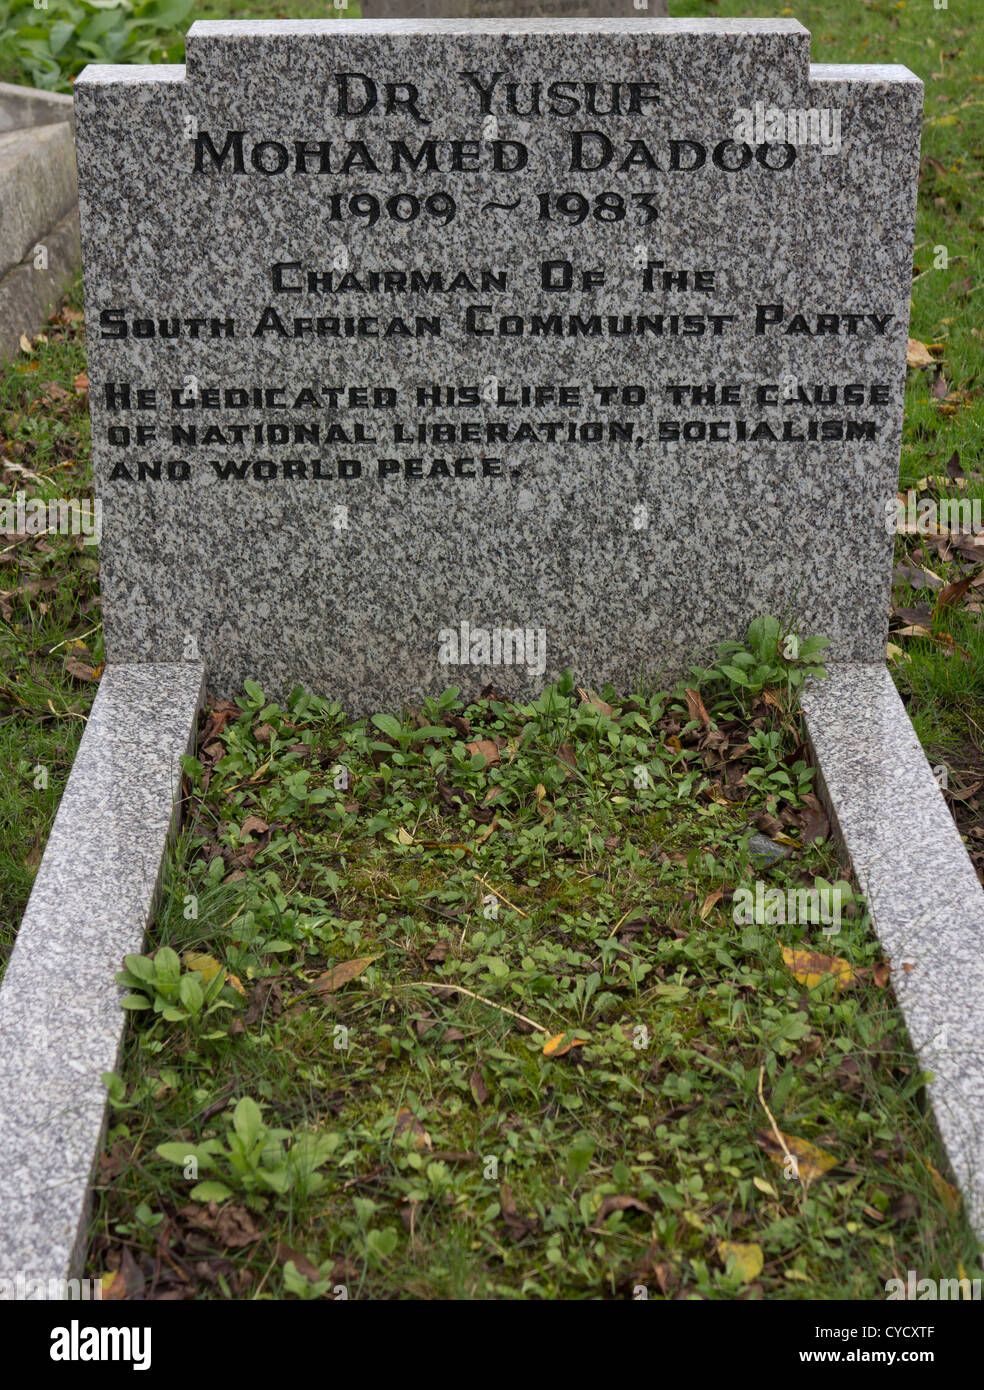 Tomb of Dr. Yusuf Nohamed Dadoo, the late Chairman of the South African Communist Party at Highgate Cemetery, London, - Stock Image